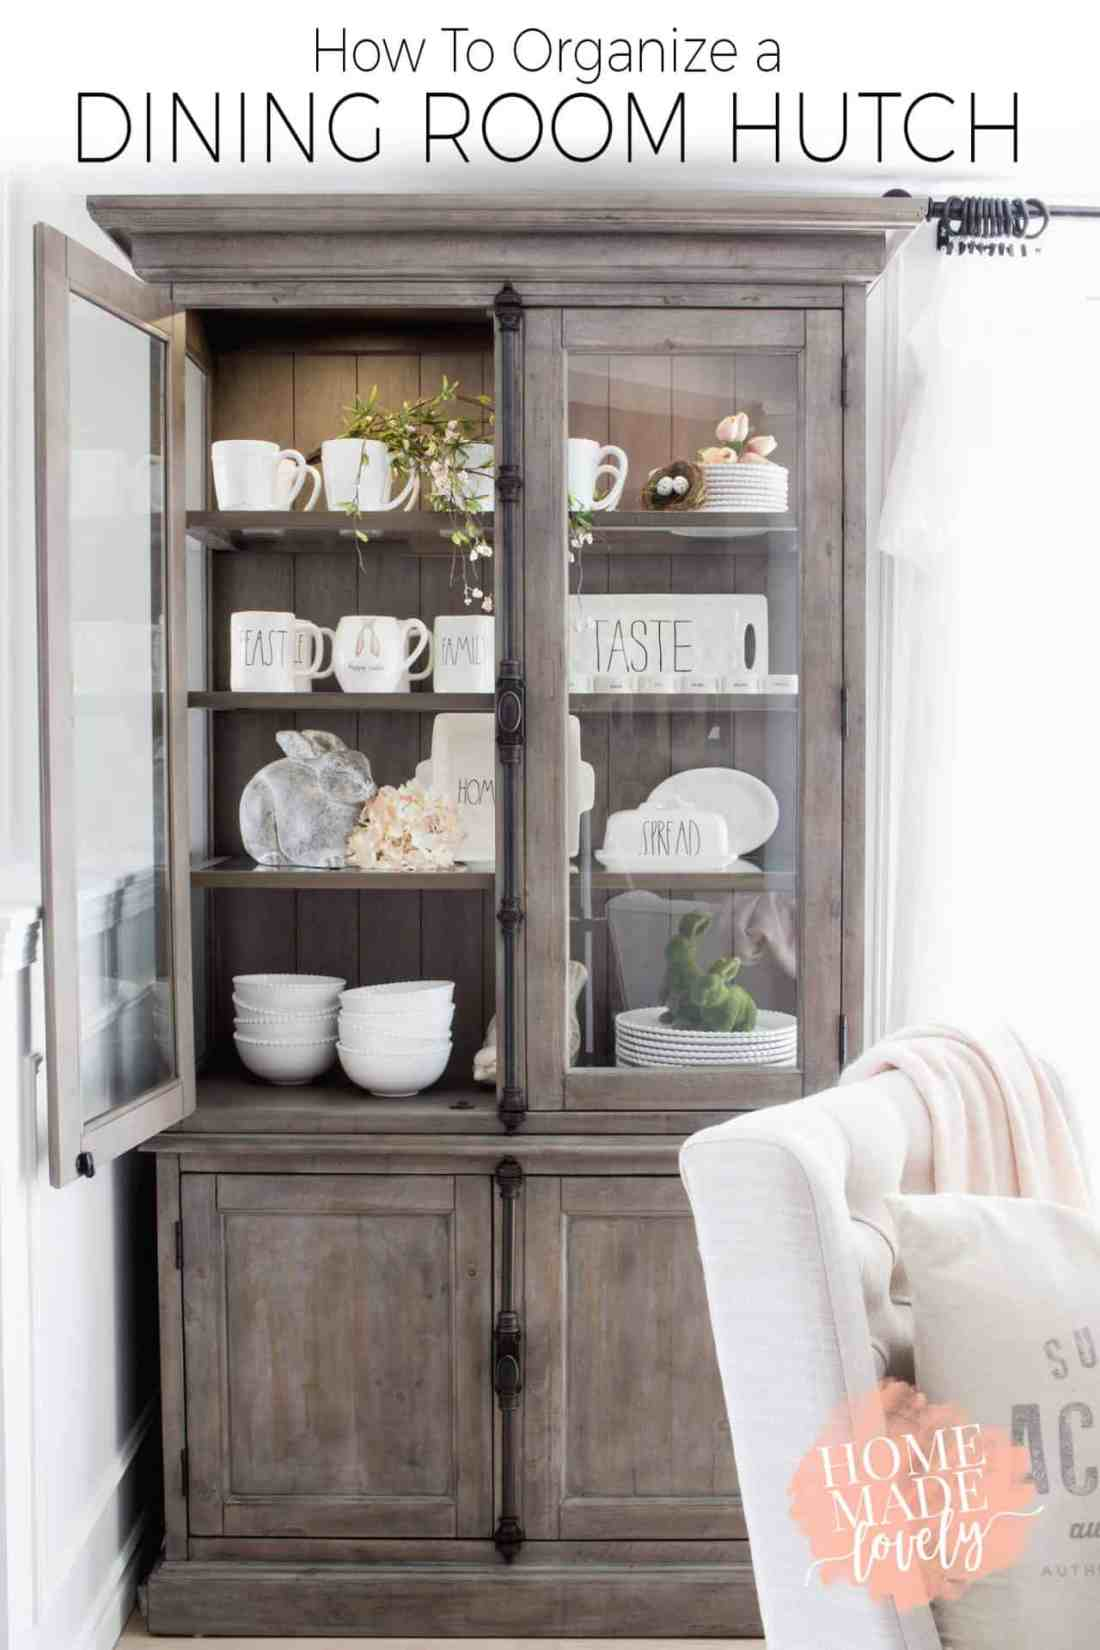 If you have pretty things like napkins, placemats, napkin rings, etc. and want to know how to organize a dining room hutch, here's how to do it. Plus more of our Keswick Buffet and Hutches from The Brick.